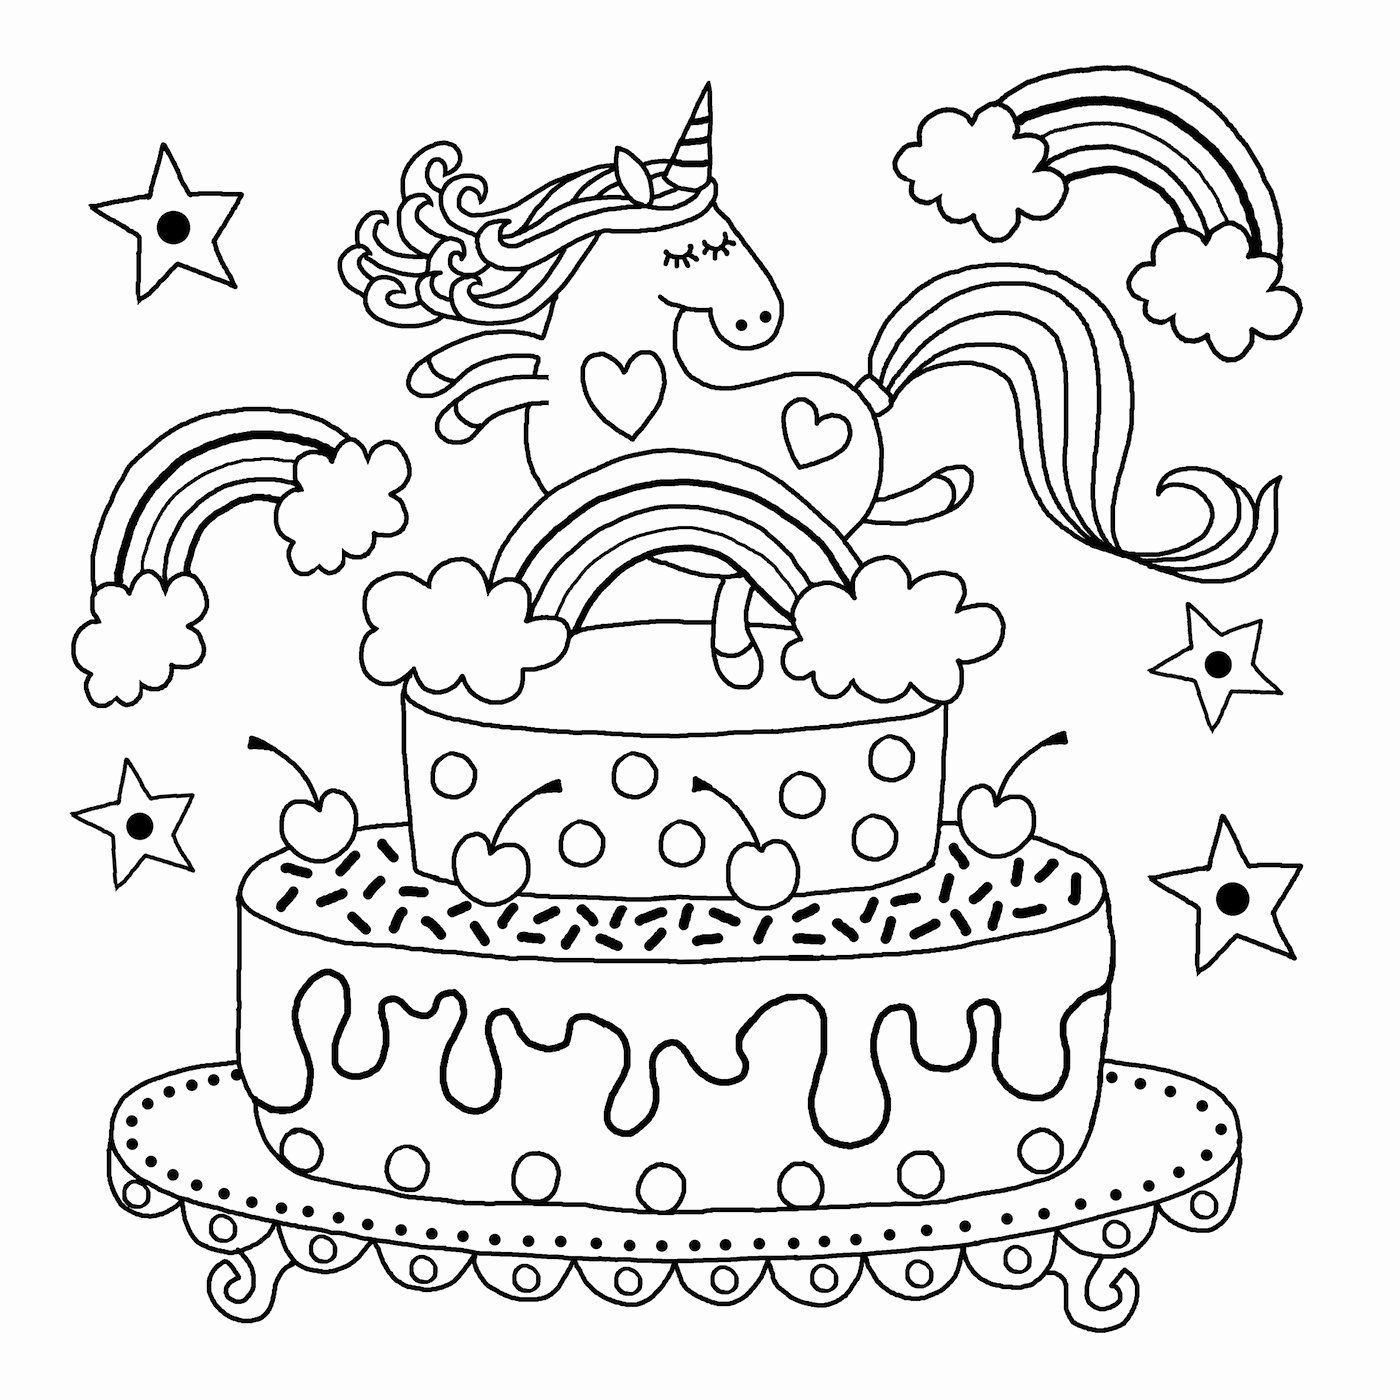 24 Cute Unicorn Coloring Pages Printable Free printable